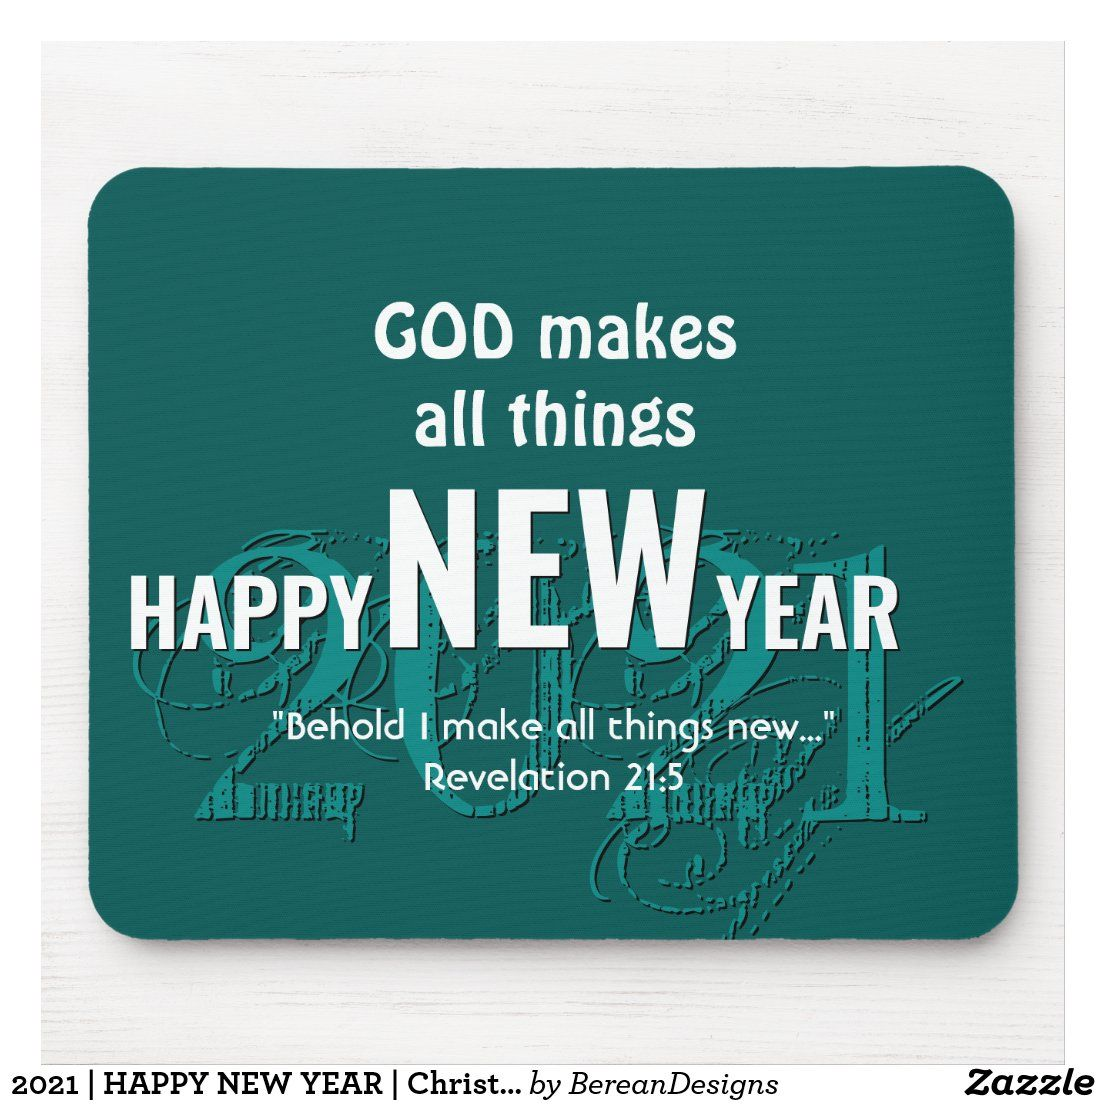 2021 Happy New Year Christian Scripture Teal Mouse Pad Zazzle Com In 2021 New Year Christian Quotes Quotes About New Year Christian Song Lyrics